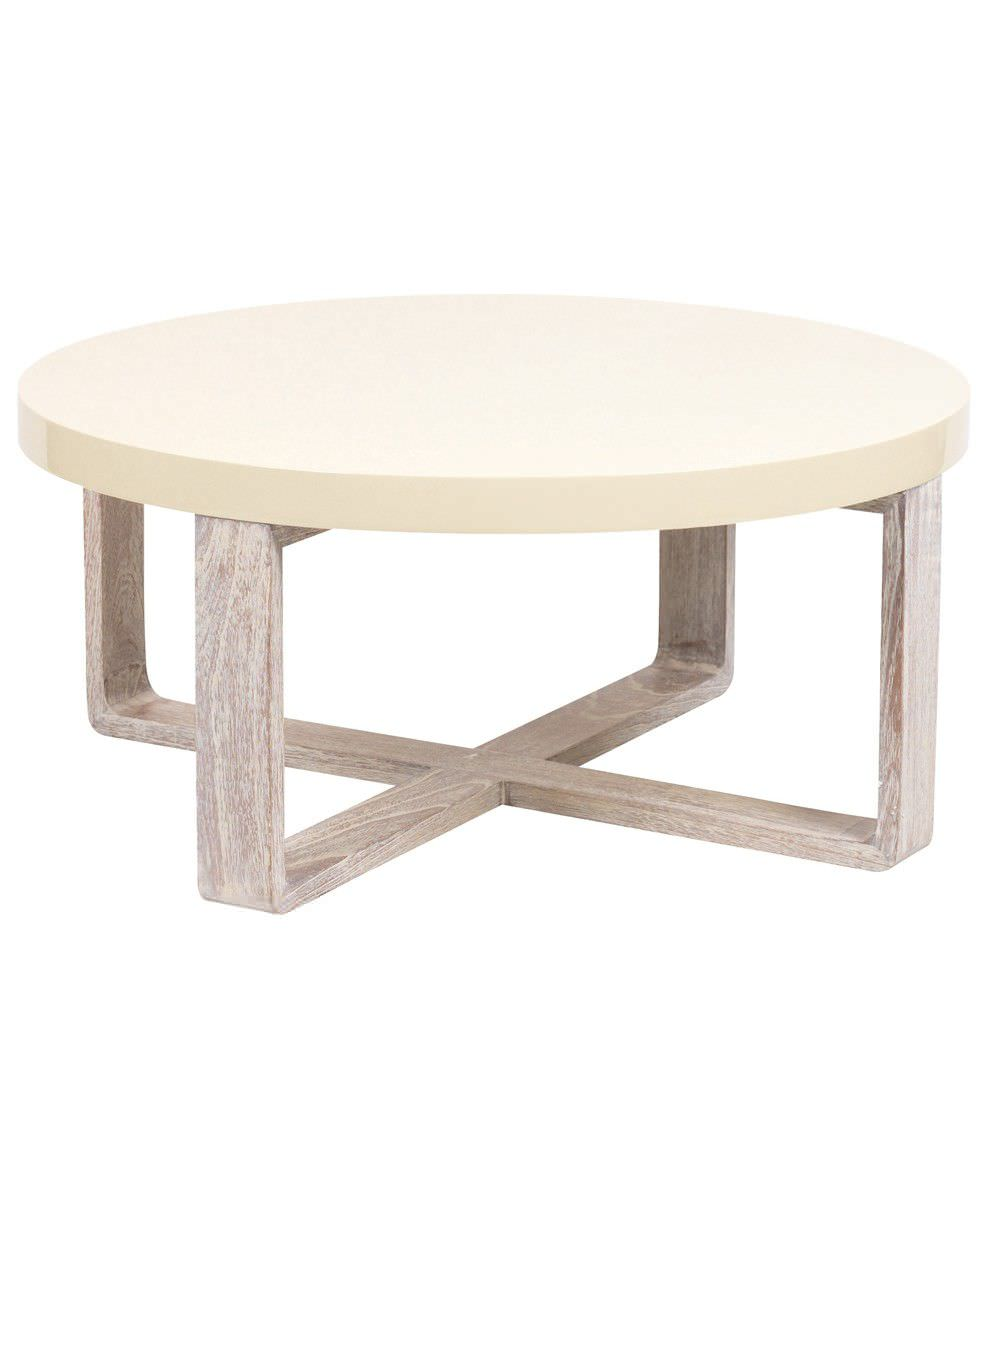 Table basse blanche pied bois id es de d coration int rieure french decor Table basse planche bois